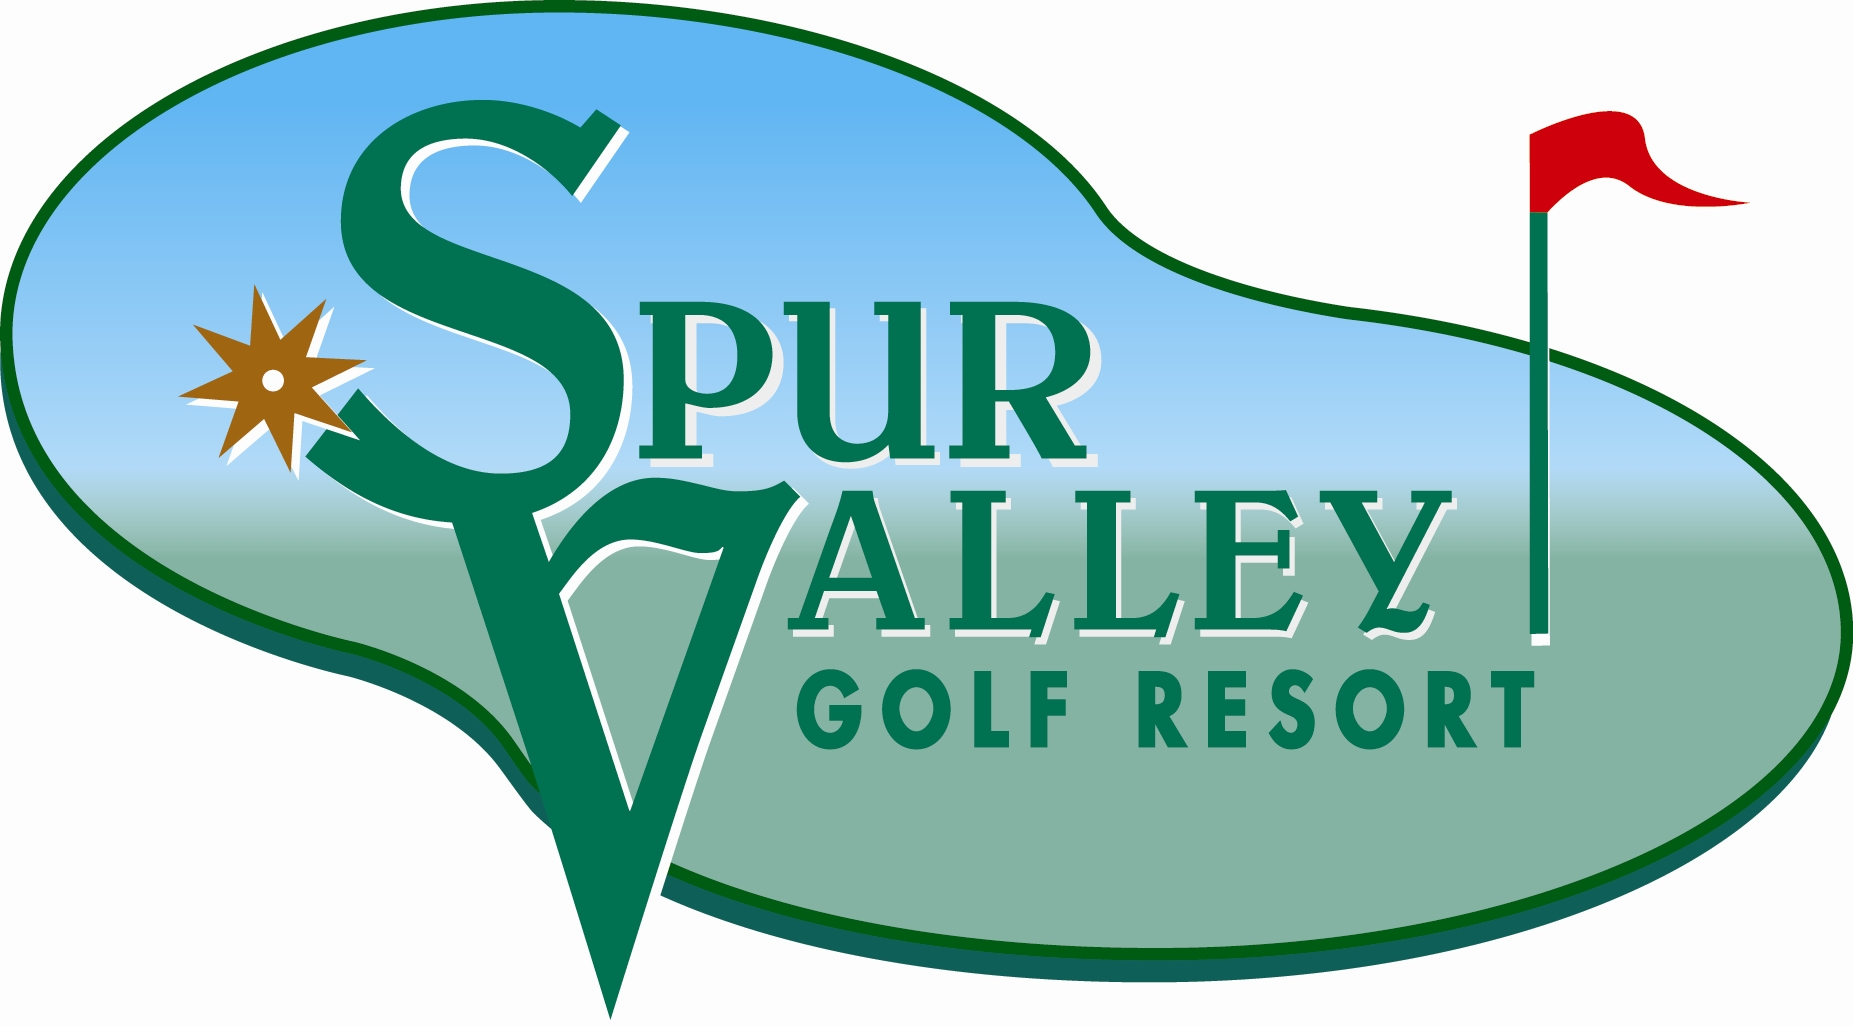 SPUR VALLEY GOLF RESORT & CAMPGROUND